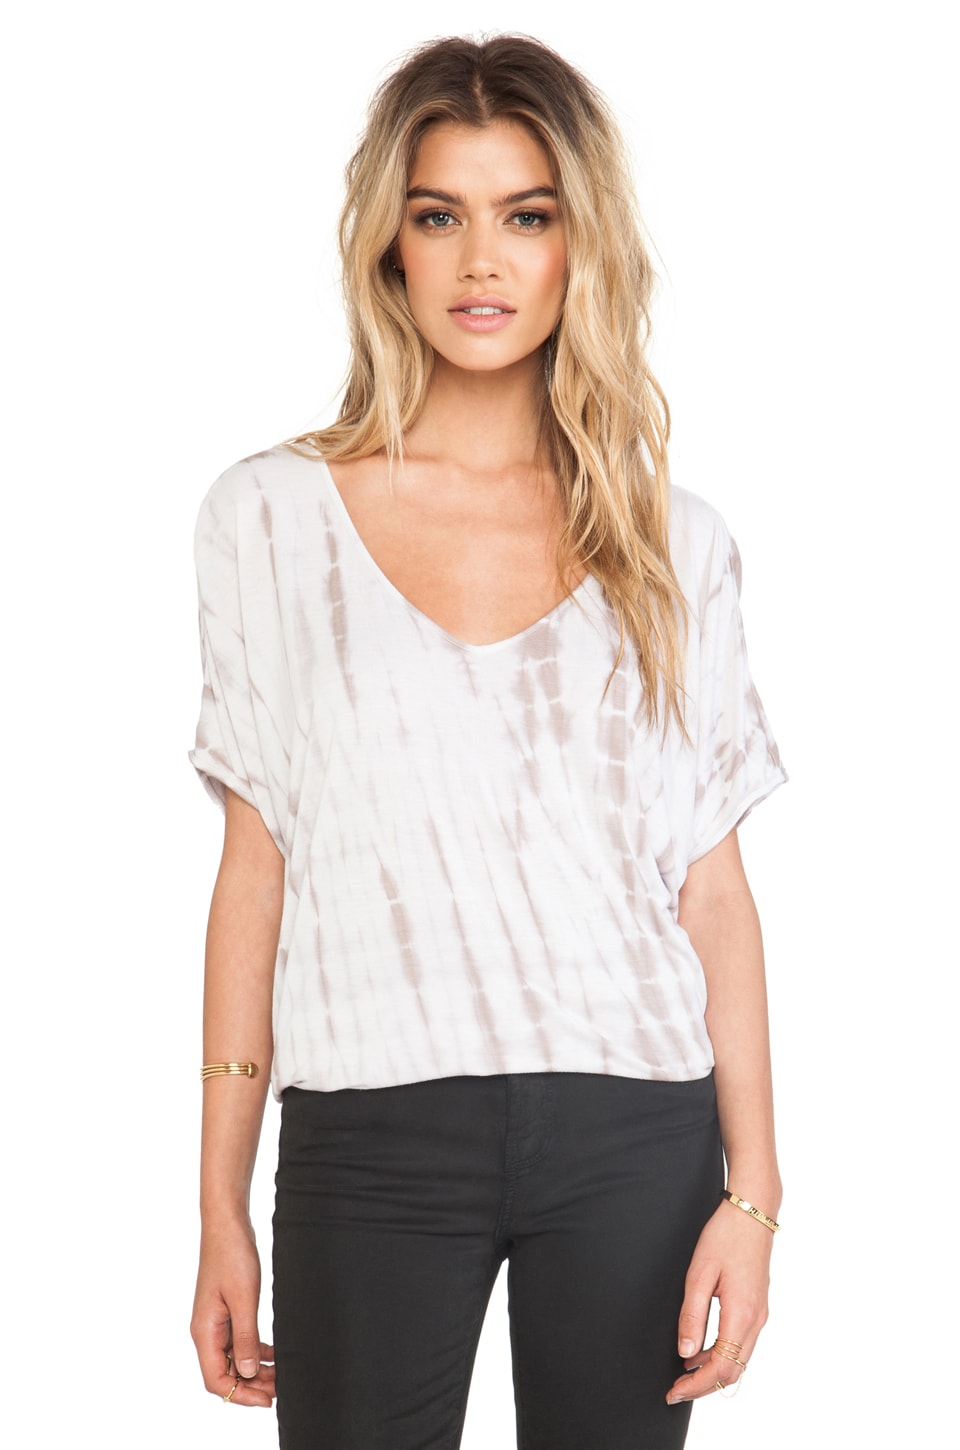 Soft Joie Bangalore Top in Antique White & Ash Grey